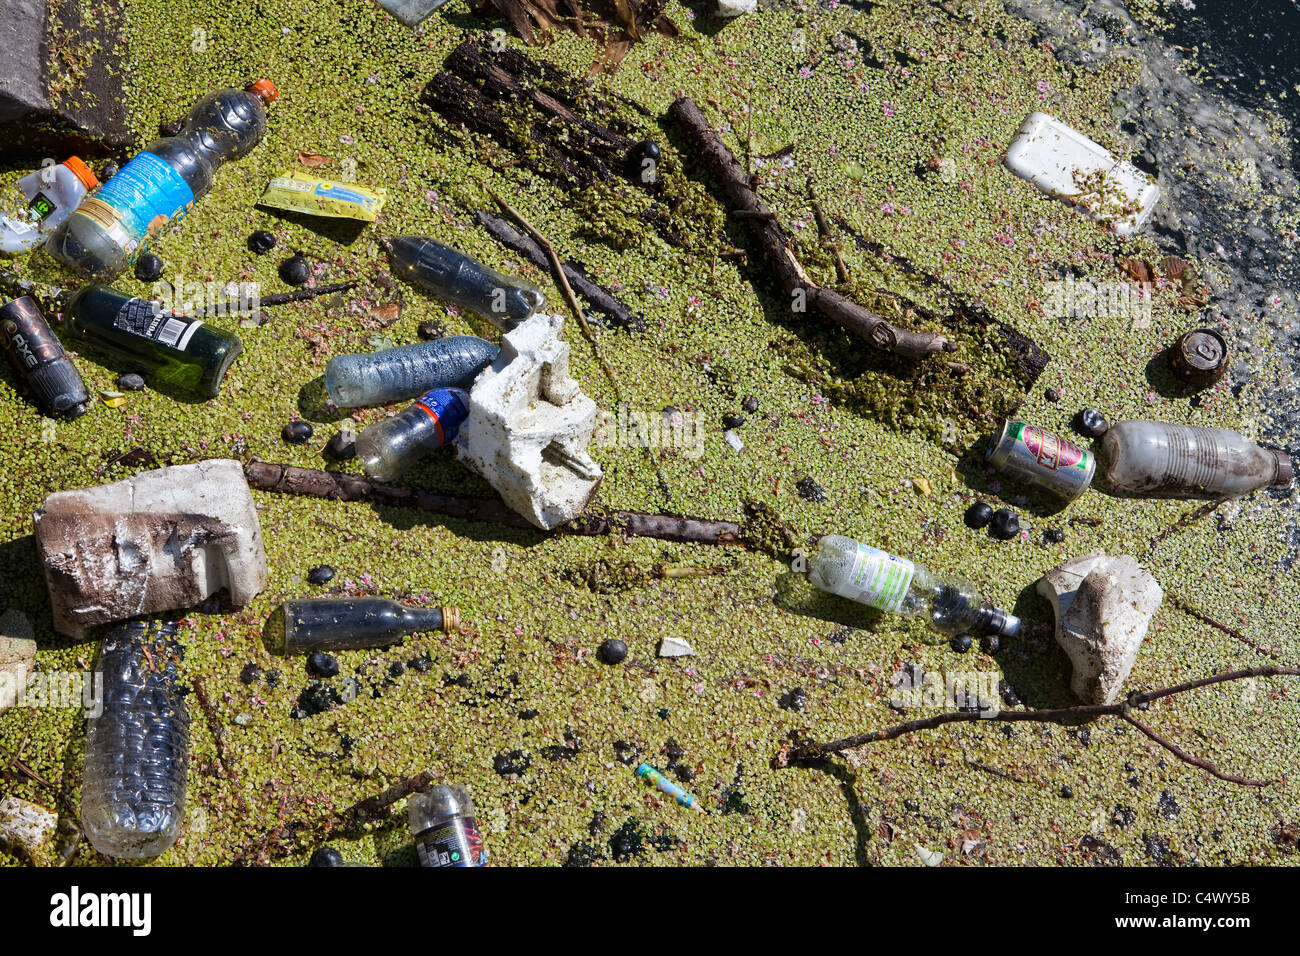 Small creek with pollution - Stock Image